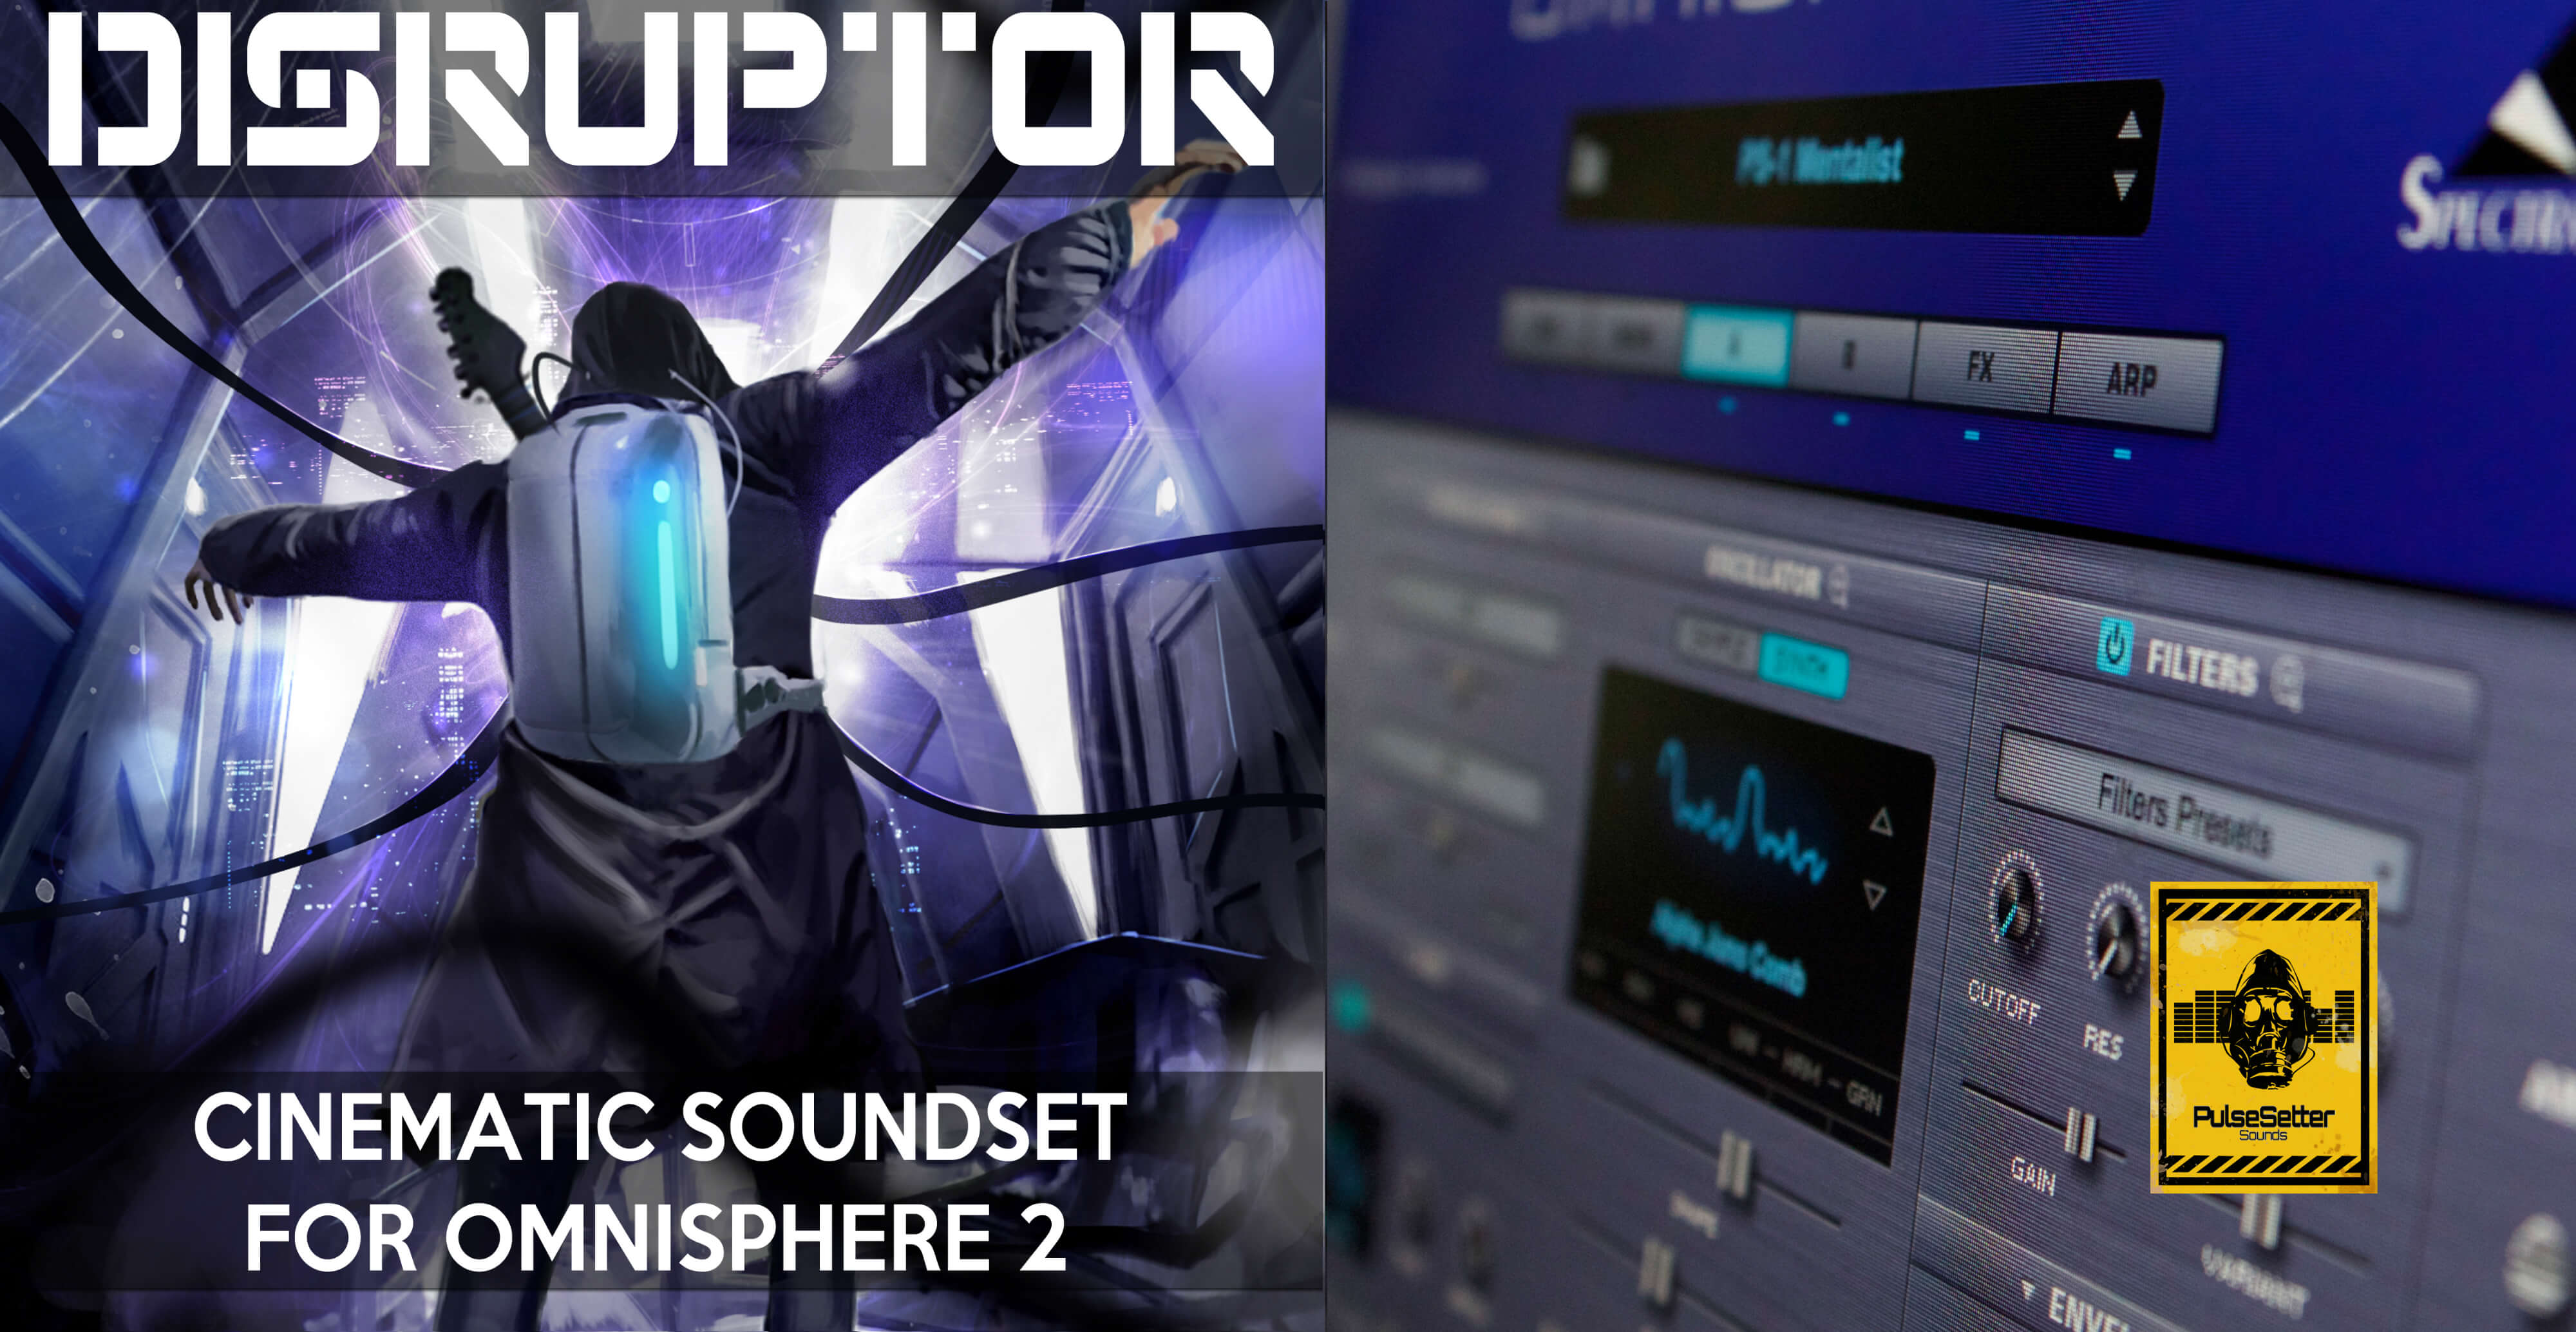 DISRUPTOR: New Omnisphere Soundset for Film and Video Game Composers